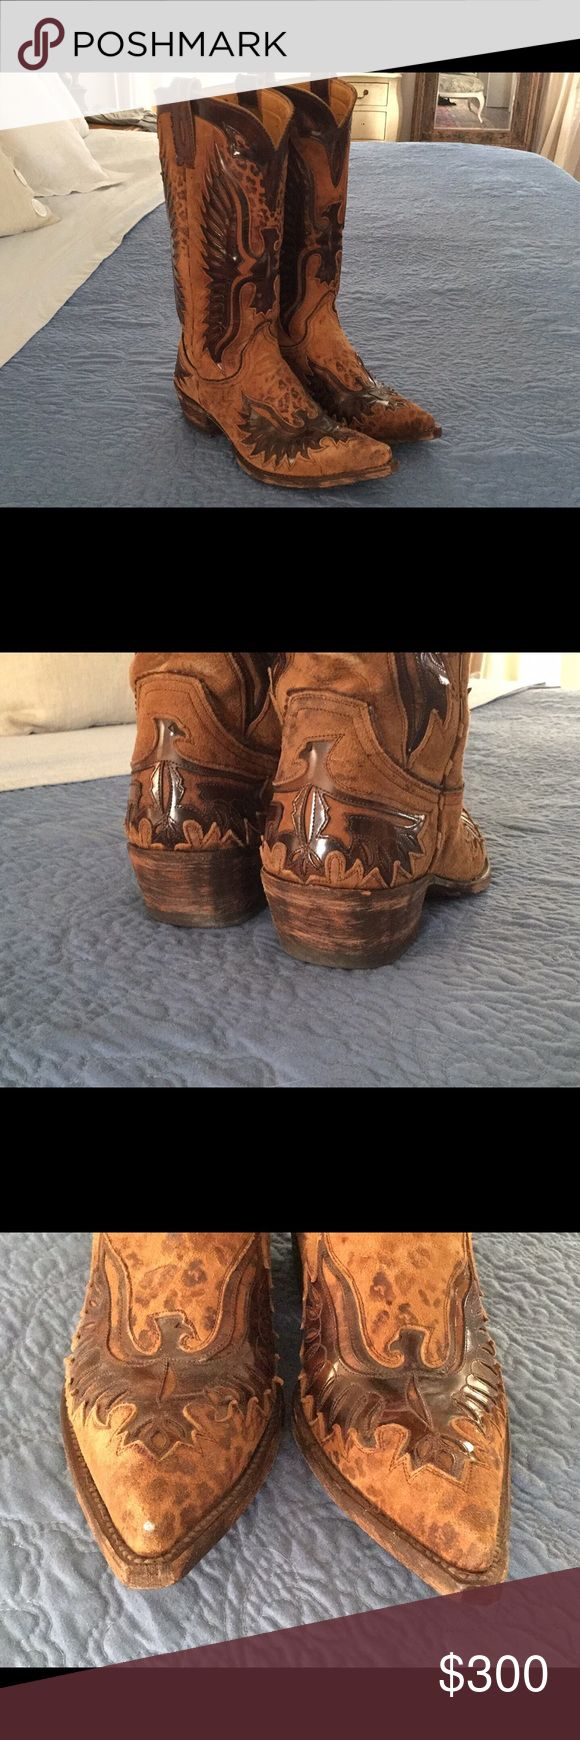 Old Gringo Eagle Boots Old Gringo hand made Eagle boots! Worn a few times. One tiny scuff on toe, see pics. Old Gringo Shoes